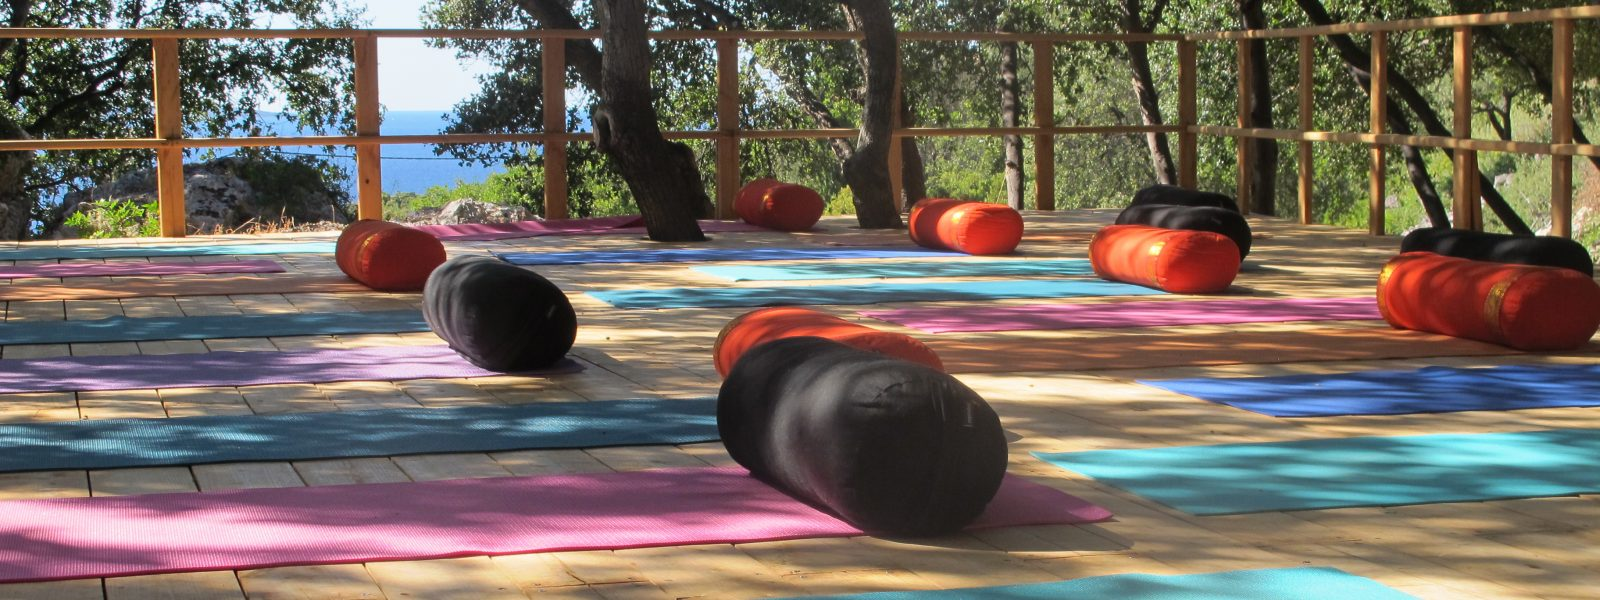 Ithaca - Yoga holidays - Yoga on a Shoestring